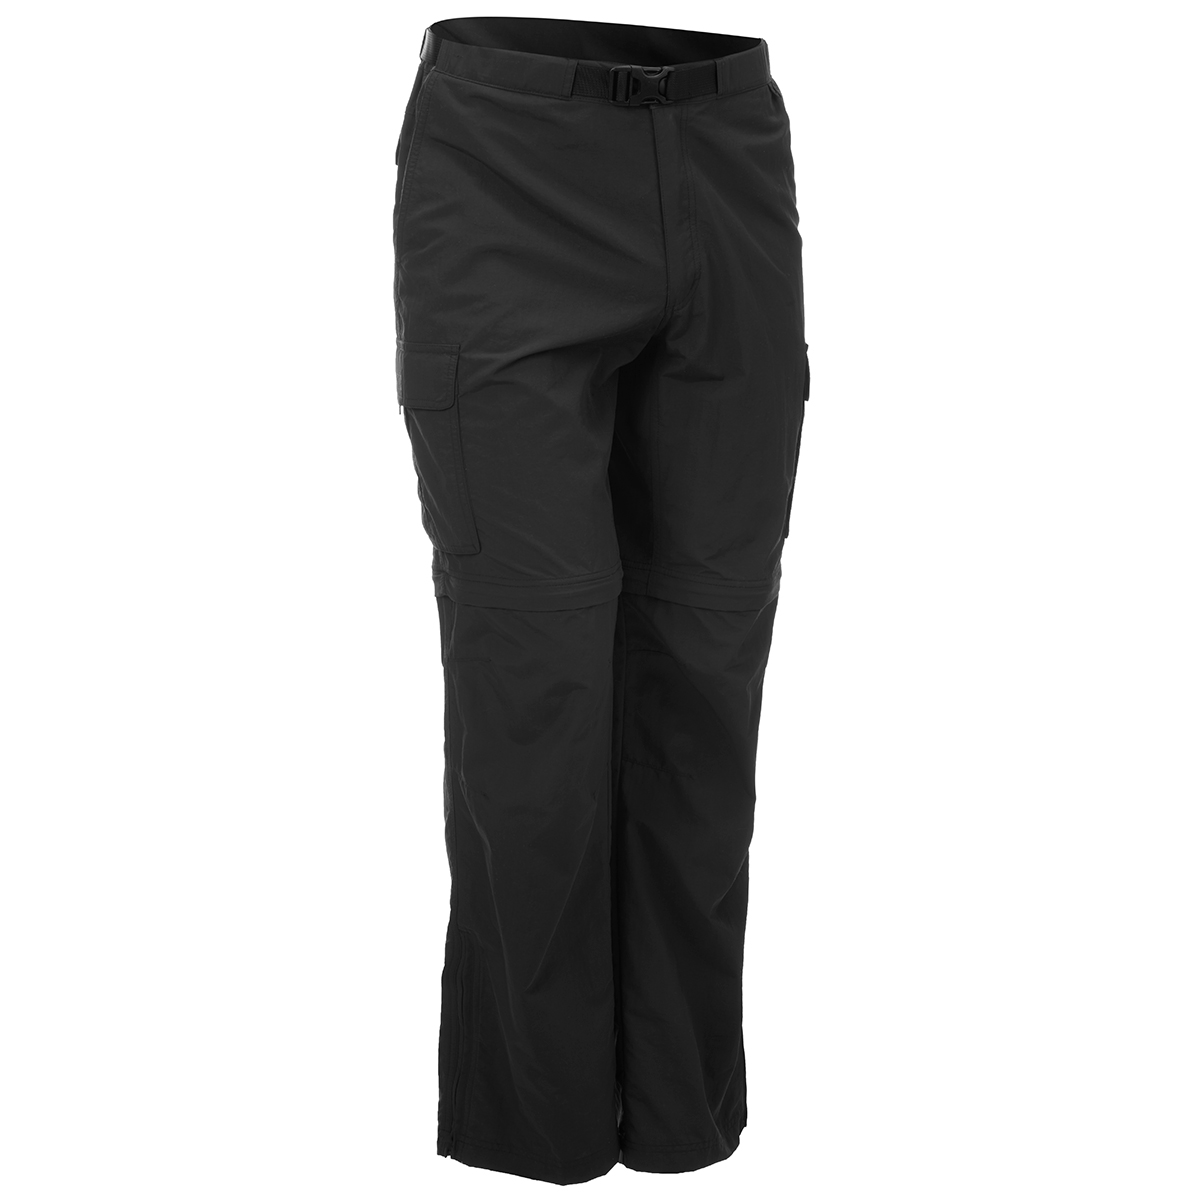 Ems Men's Camp Cargo Zip-Off Pants - Black, 30/32